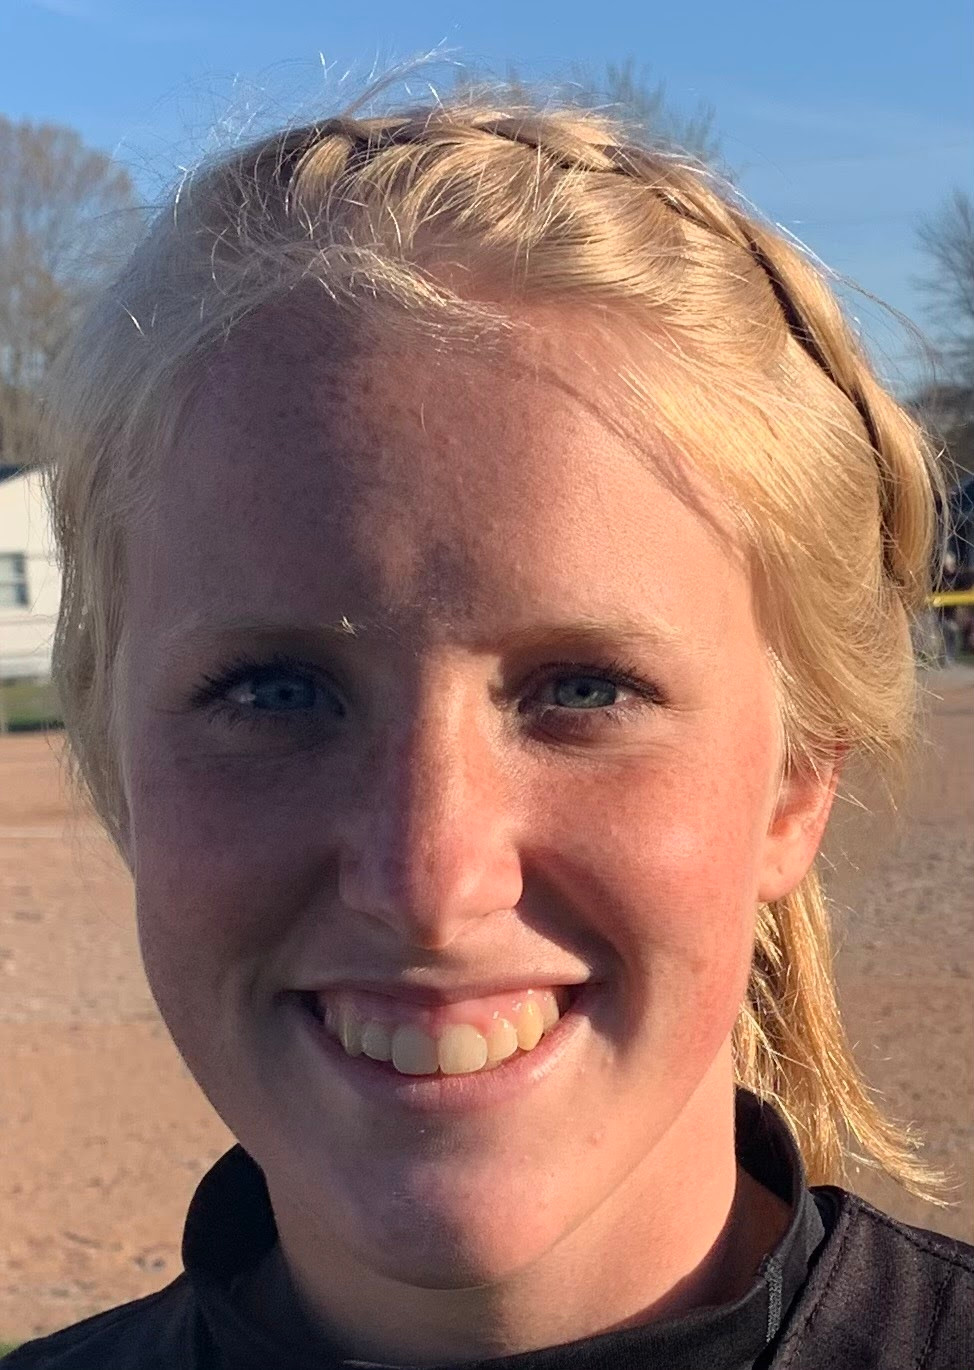 Pioneer's Mackenzie Walker hit for the cycle in a 23-0 win in five innings over Rochester at Fansler Field Friday. She had an RBI triple in the first, an RBI double in the second, a two-run homer in the fourth and a single in the fifth. She went 4 for 5 with four RBIs and three runs scored for the Class 2A, No. 13 Lady Panthers.